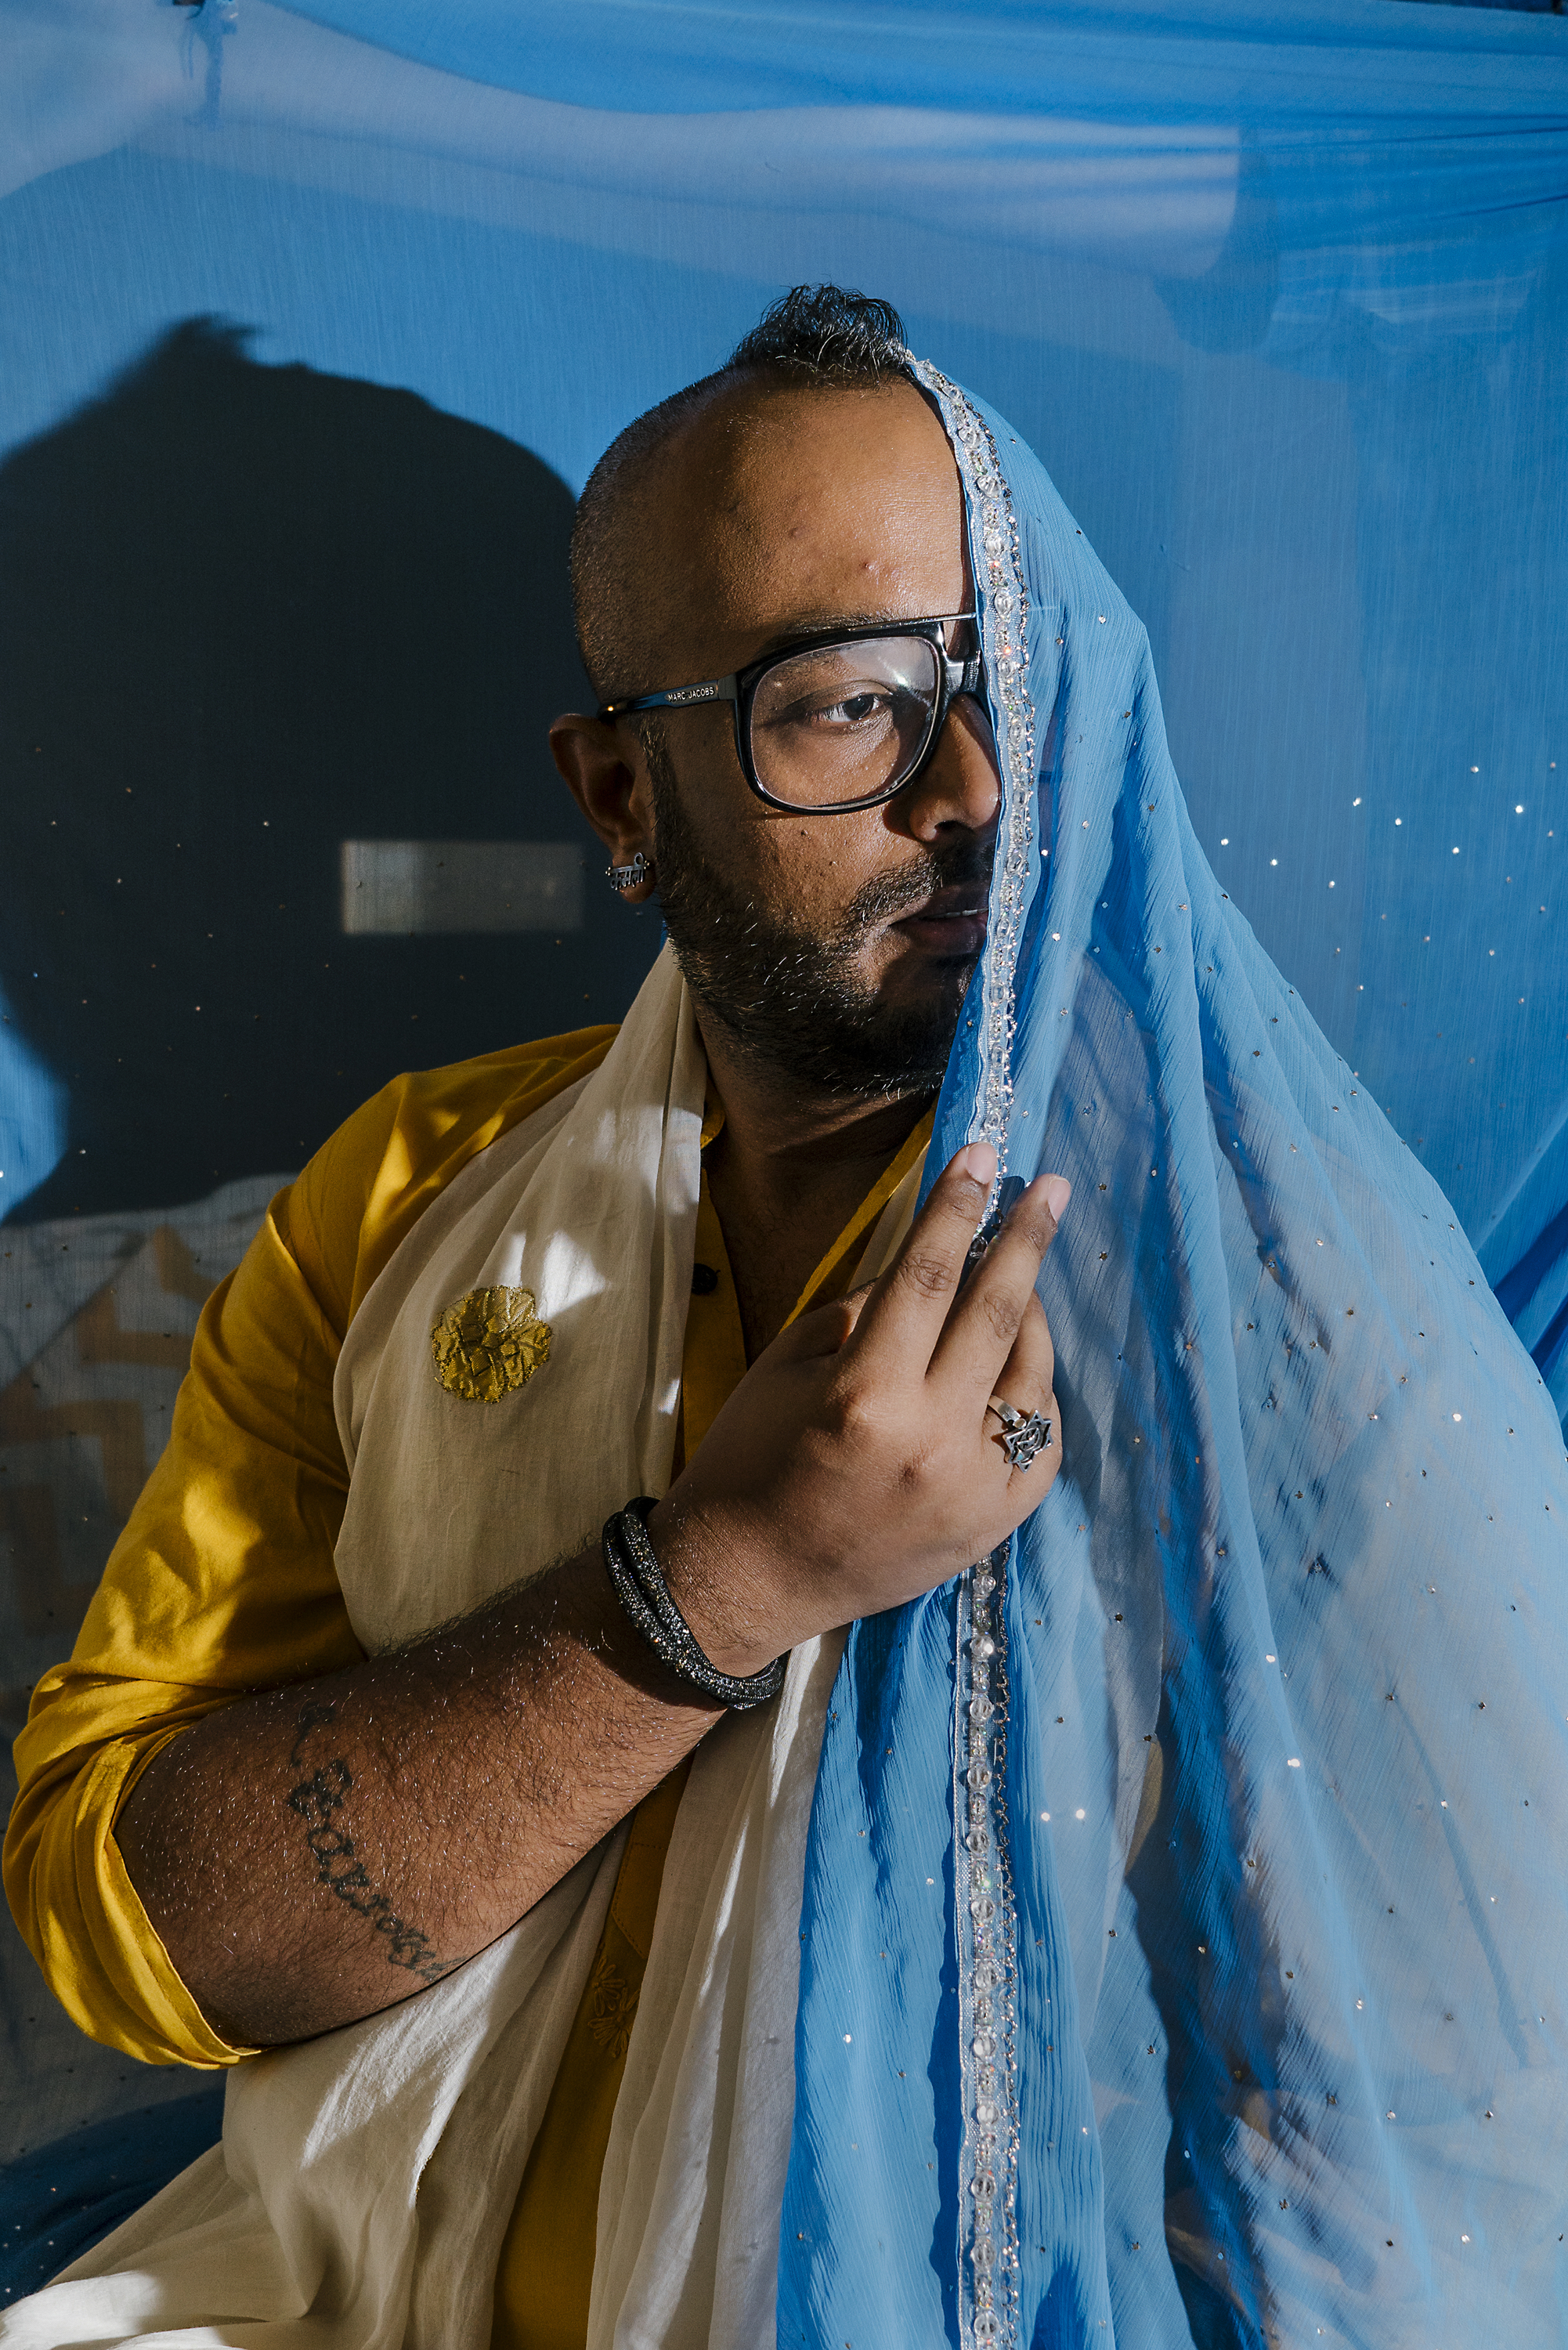 Faraz Arif Ansari, an out gay man and director of �Sisak,� an LGBTQ short film, poses for a portrait in his hotel room in New Delhi. The film tracks a brief encounter between two men who meet each other on Mumbai�s local trains.